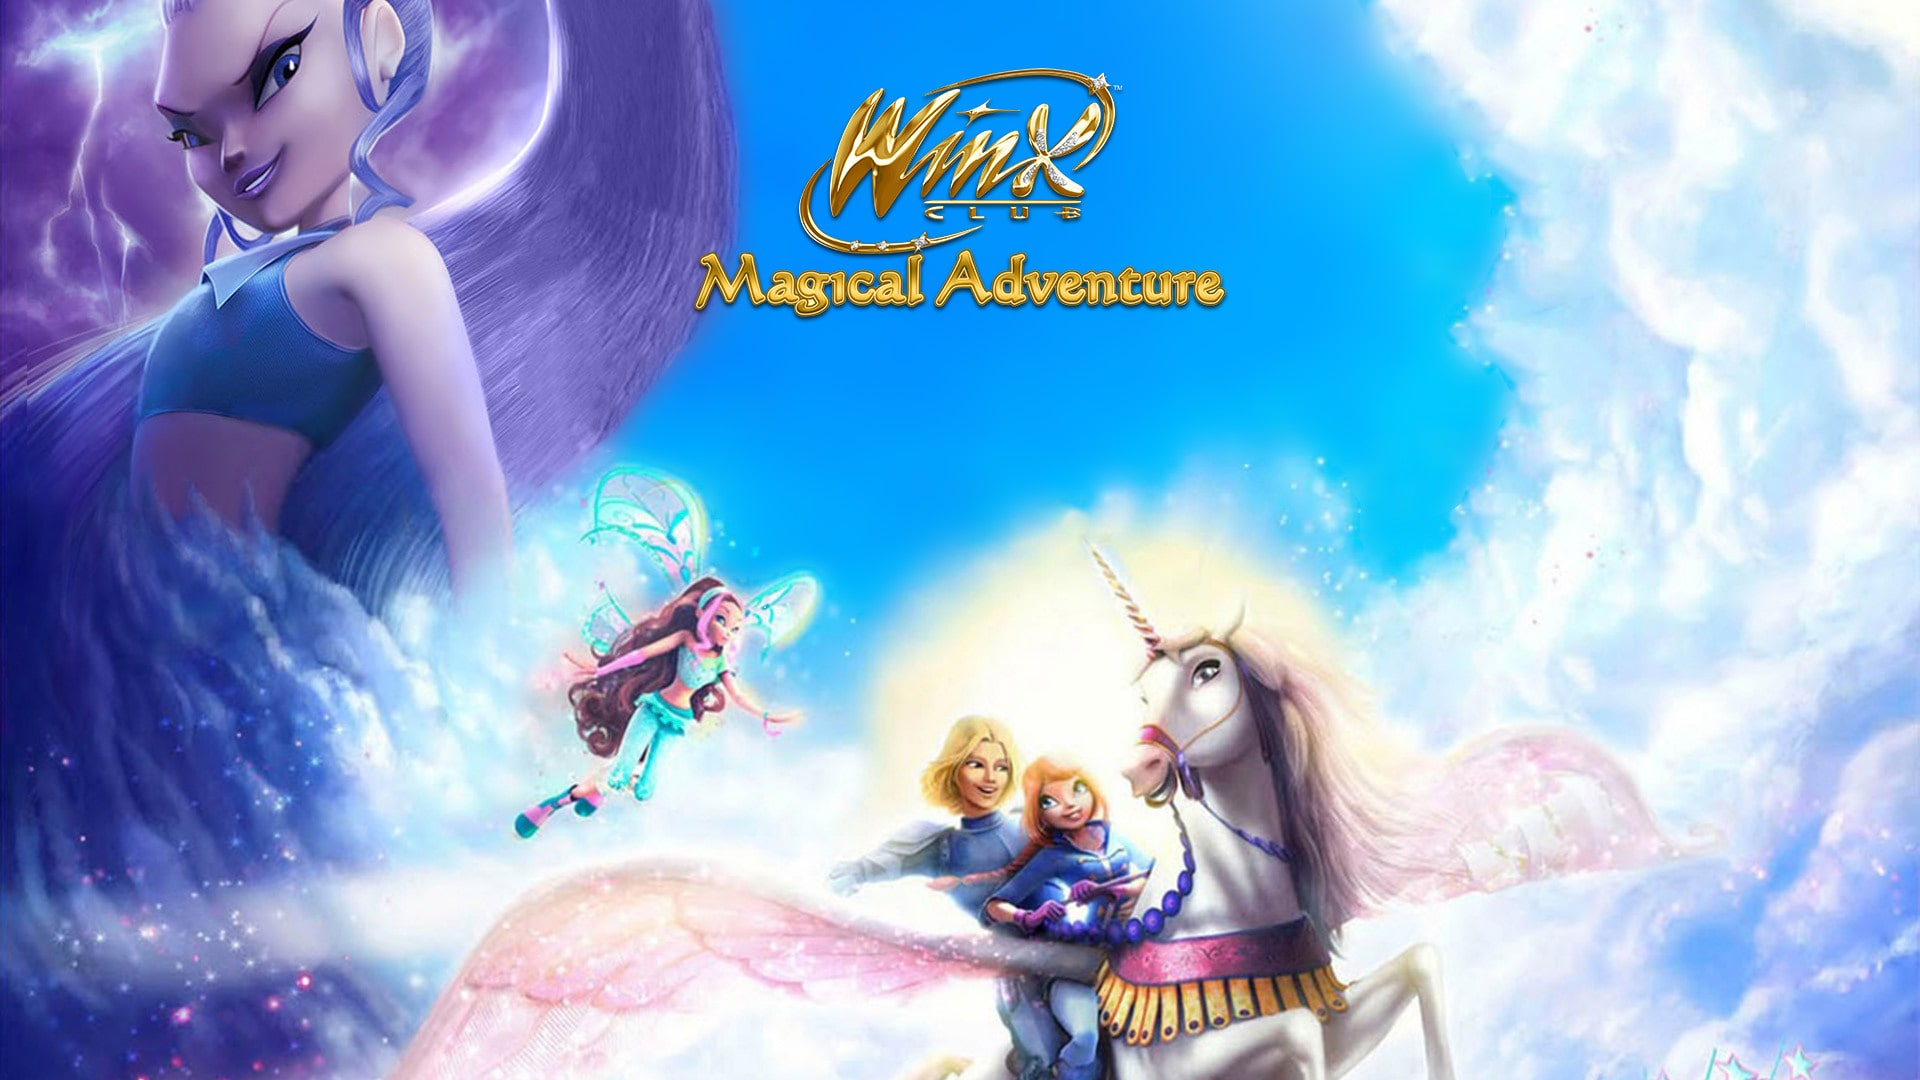 Winx Club: Magical Adventure Full Movie Hindi Dubbed Download